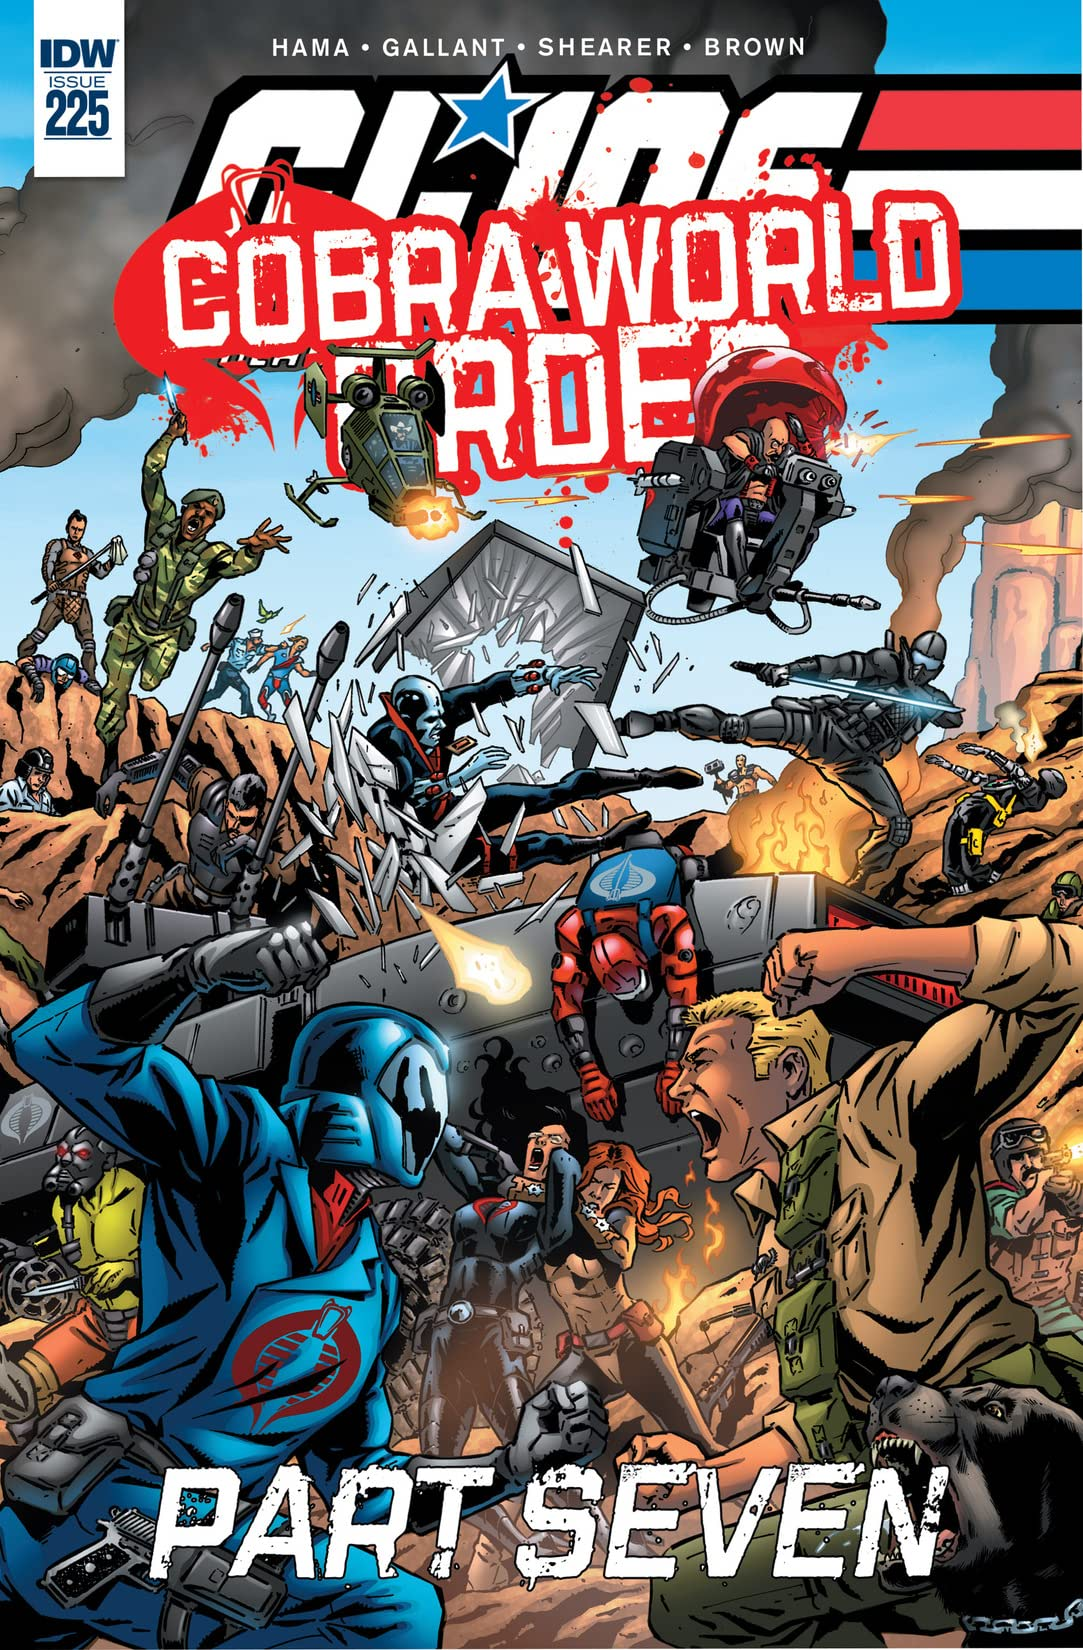 G.I. Joe: A Real American Hero #225